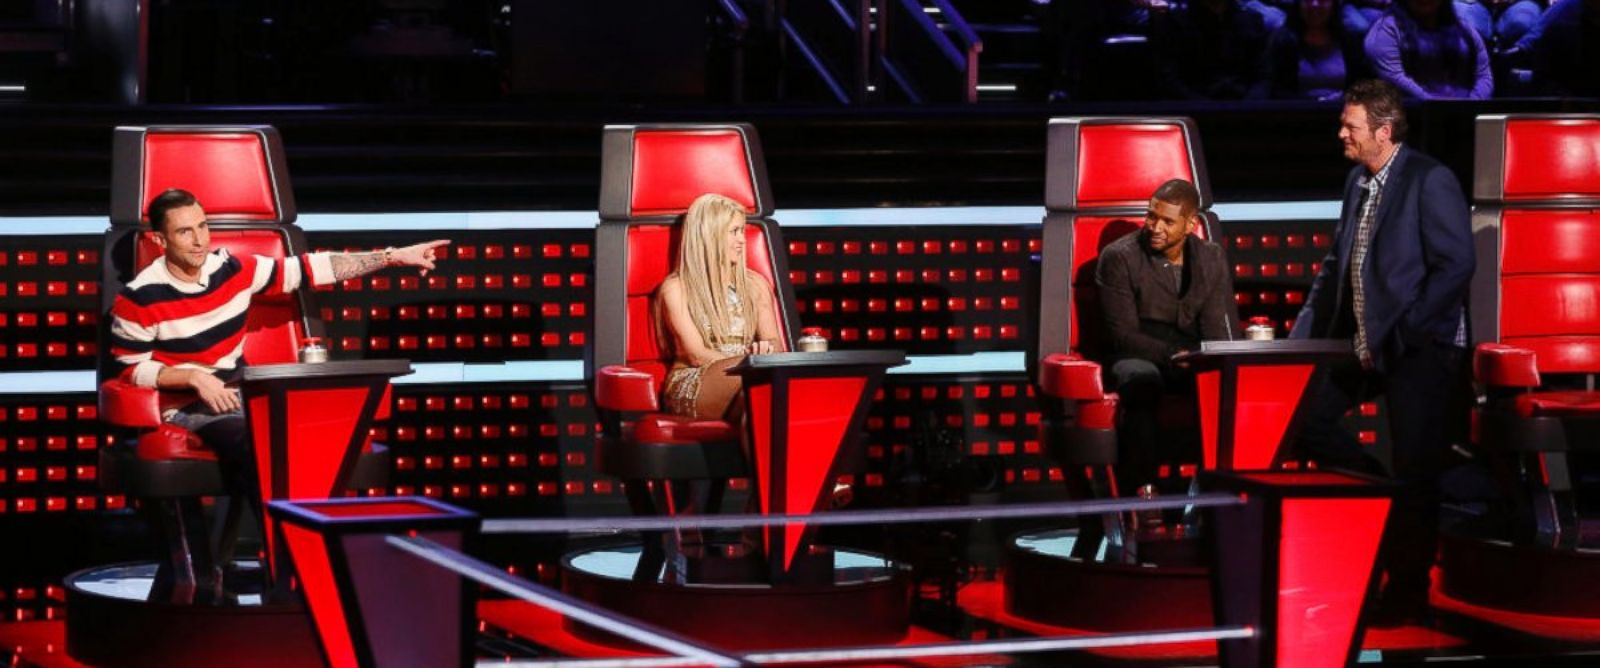 PHOTO: From left, judges Adam Levine, Shakira, Usher and Blake Shelton on The Voice, March 18, 2014.